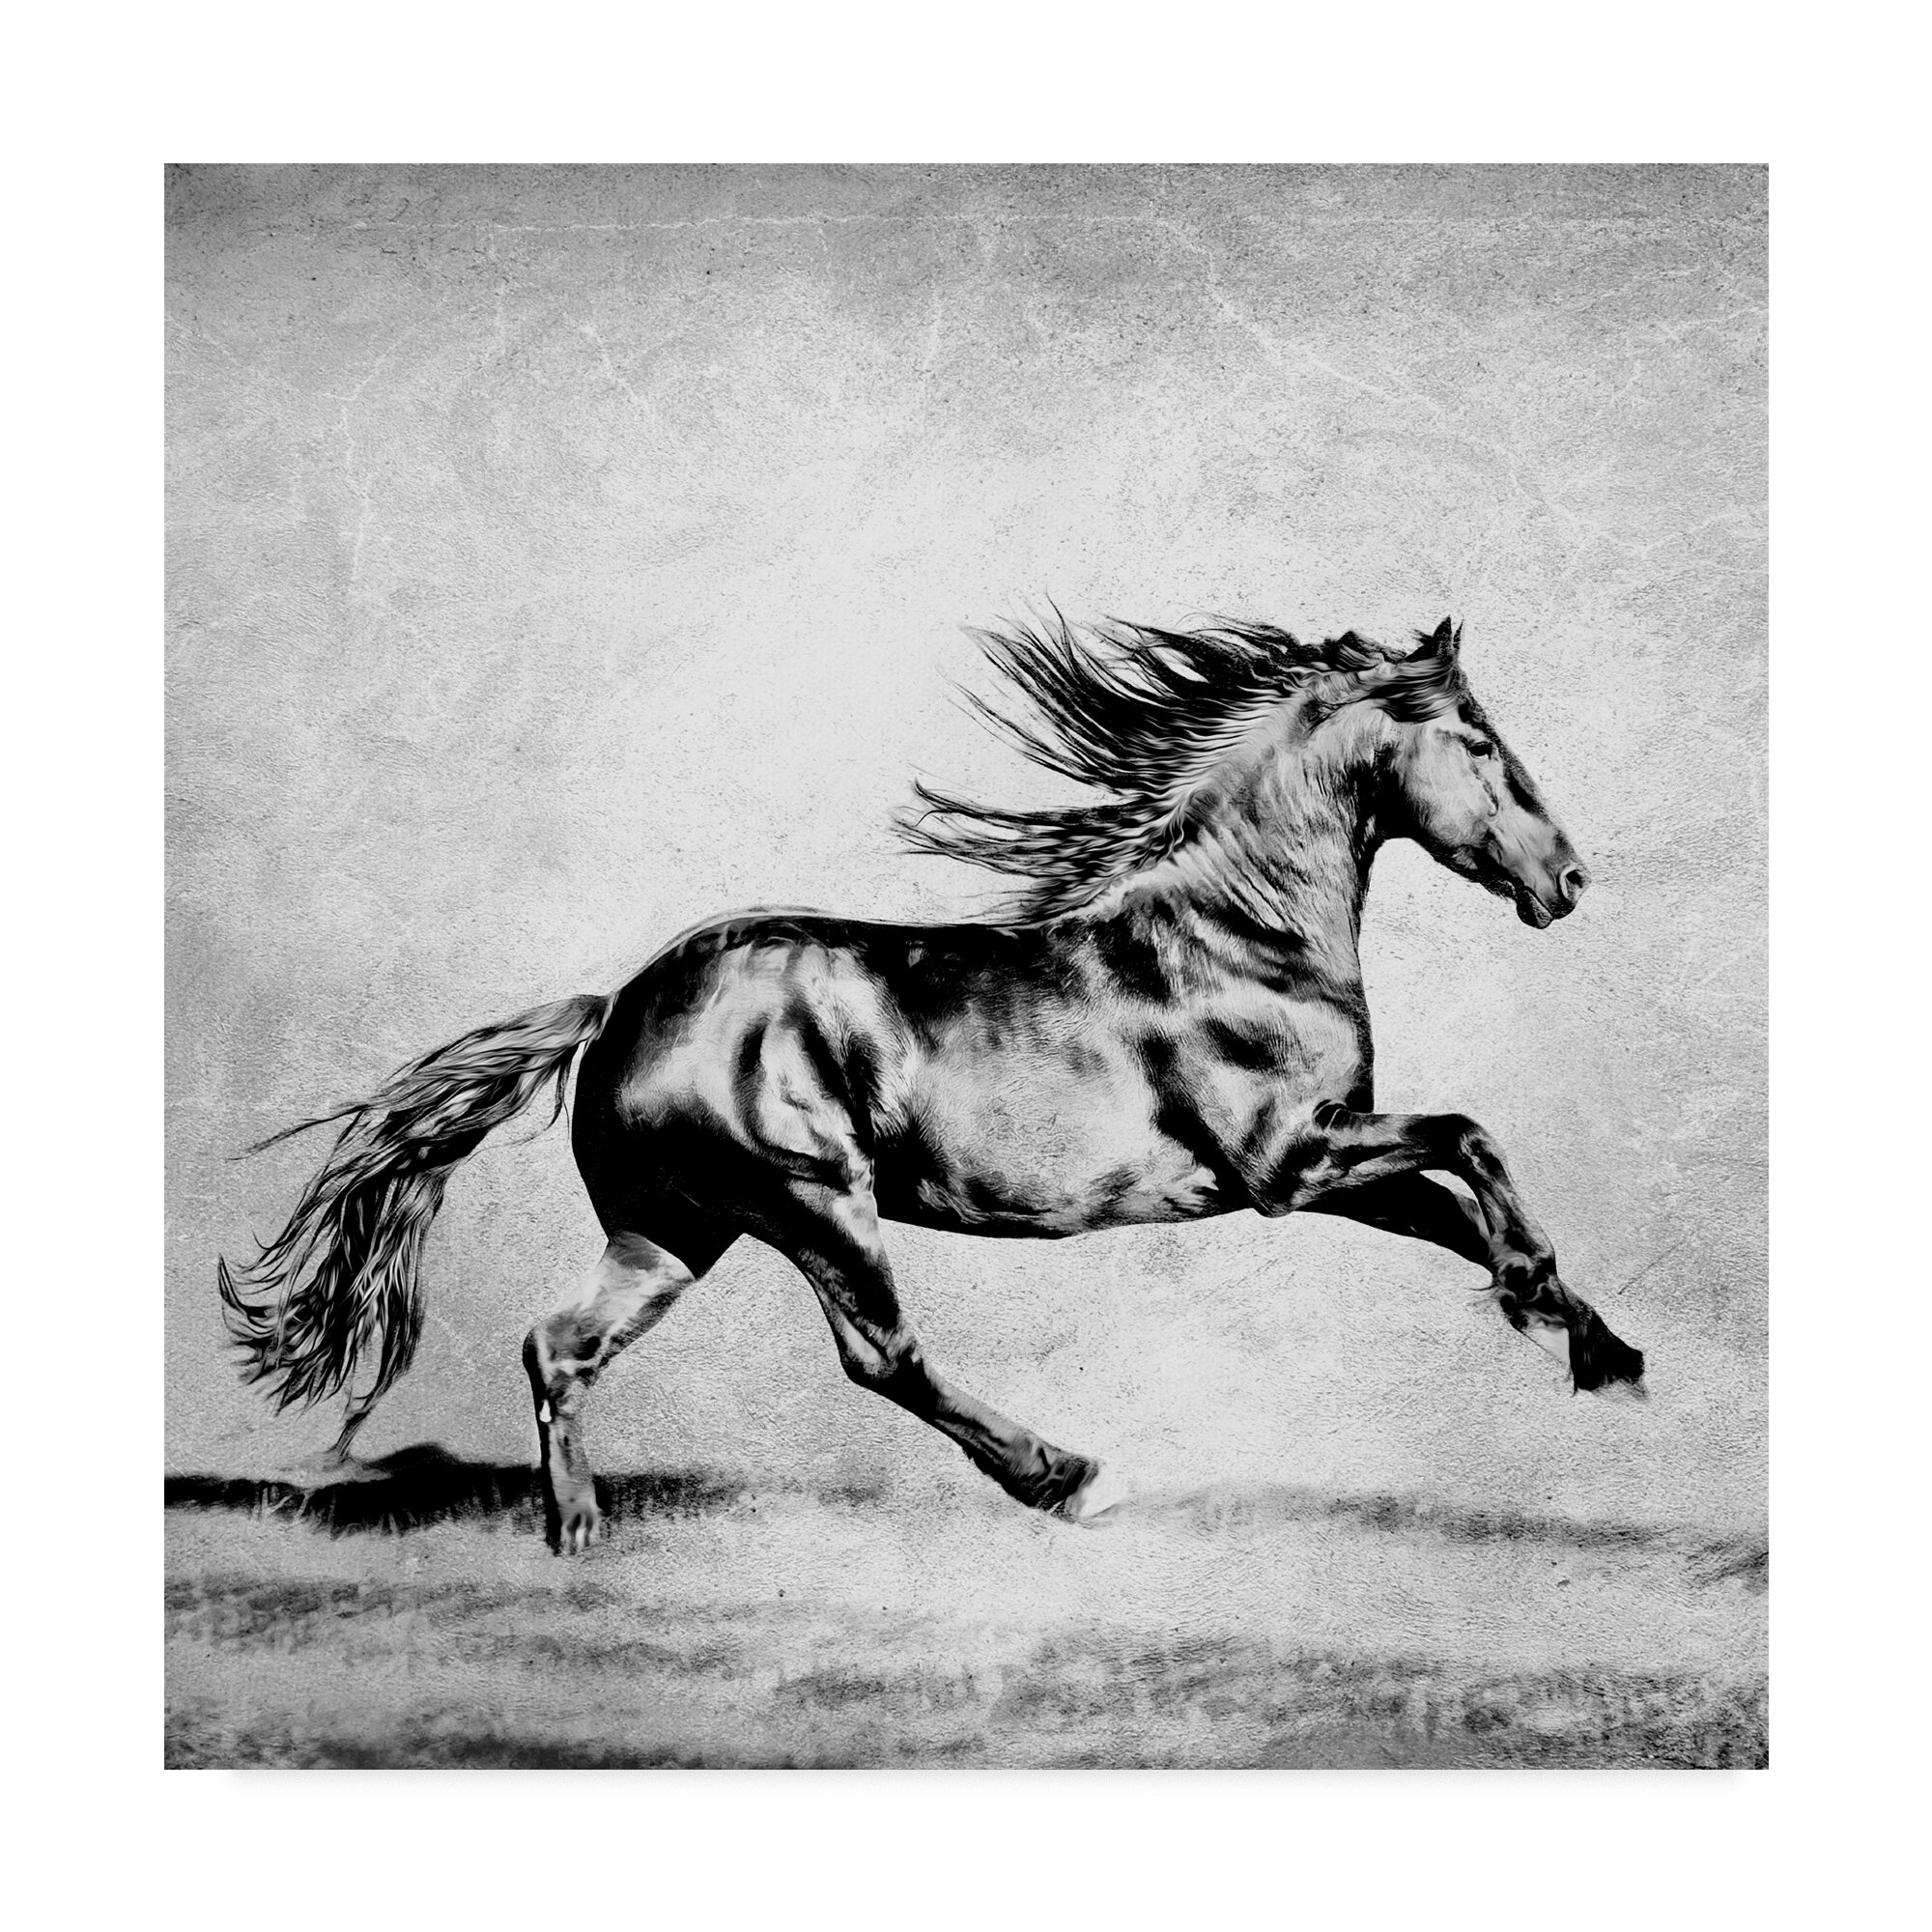 East Urban Home Black And White Horses Ii Graphic Art Print On Wrapped Canvas